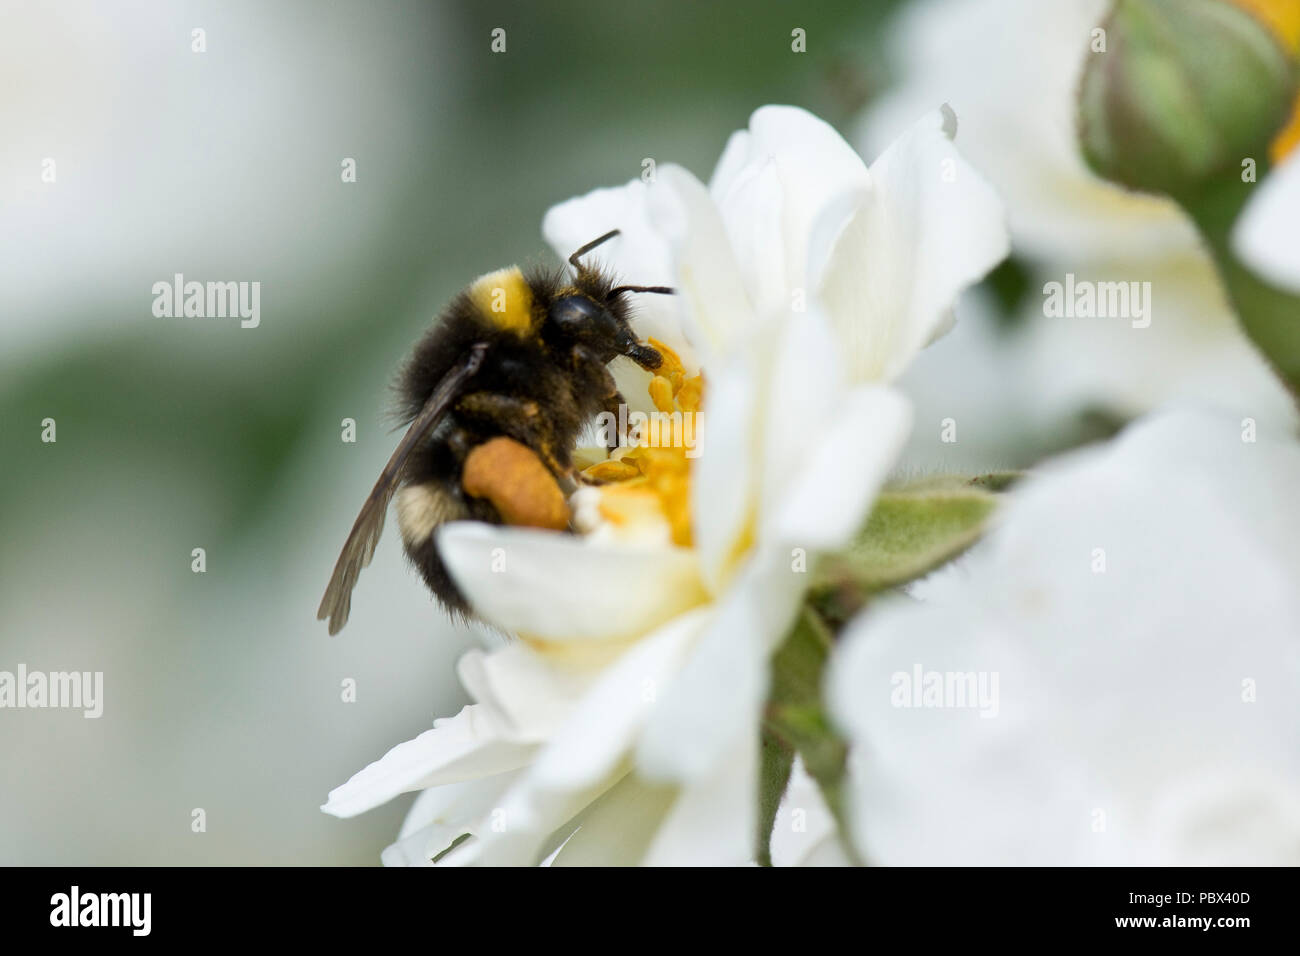 White-tailed bumblebee, Bombus lucorum, feeding on nectar and collecting pollen in leg baskets from a white rose flower, June - Stock Image